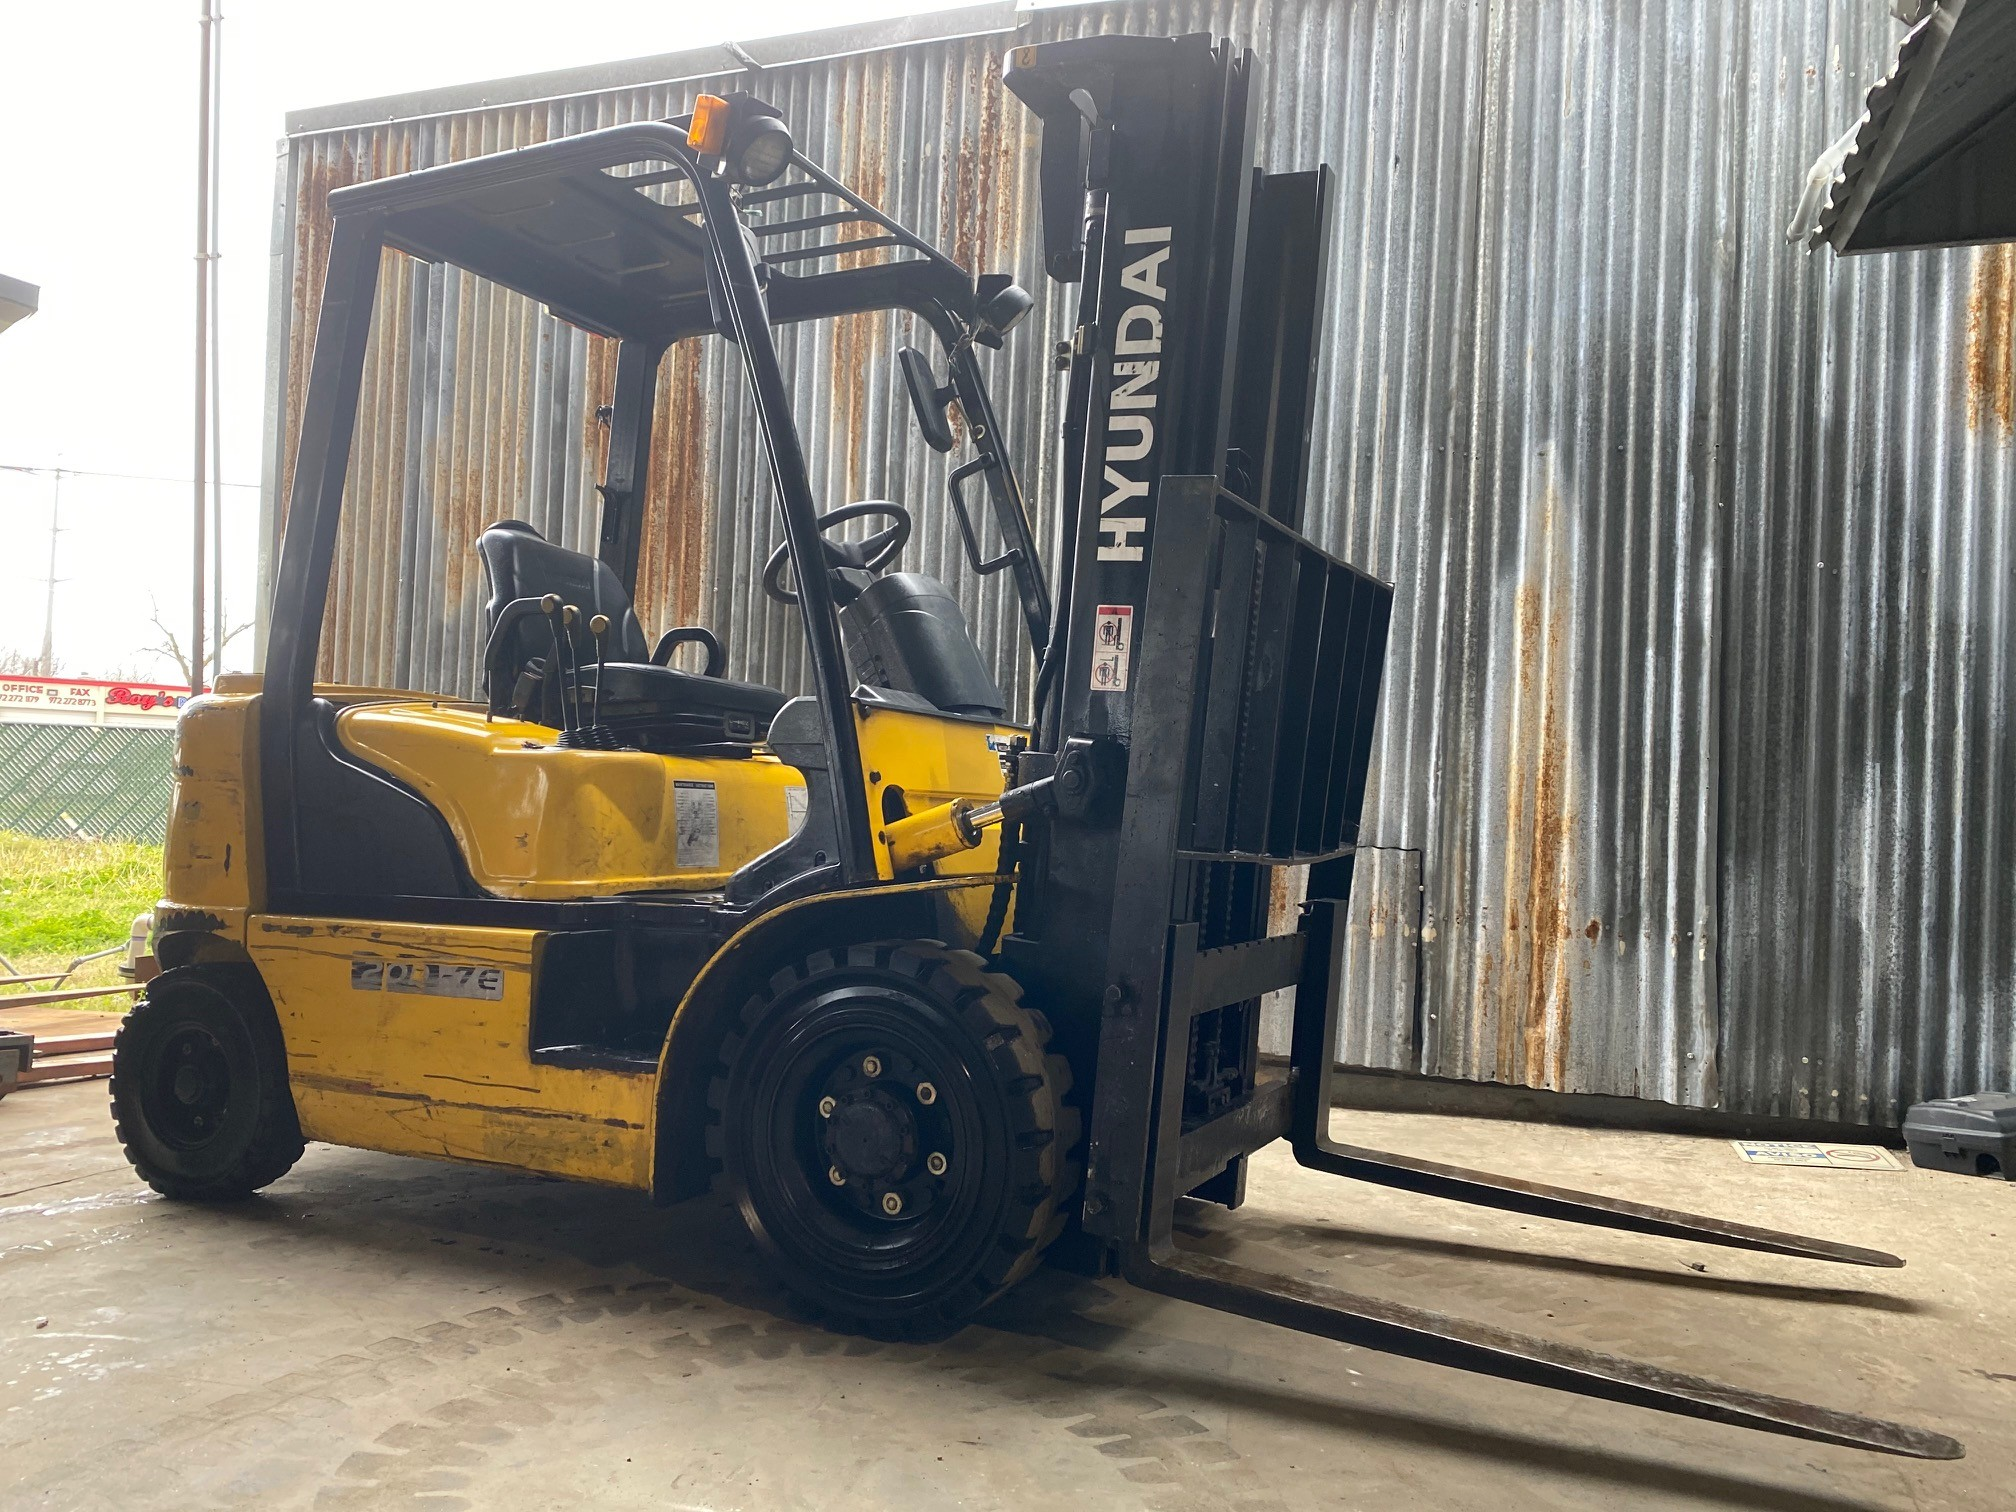 Used, 2010, Hyundai, 20D-7E, Forklifts / Lift Trucks